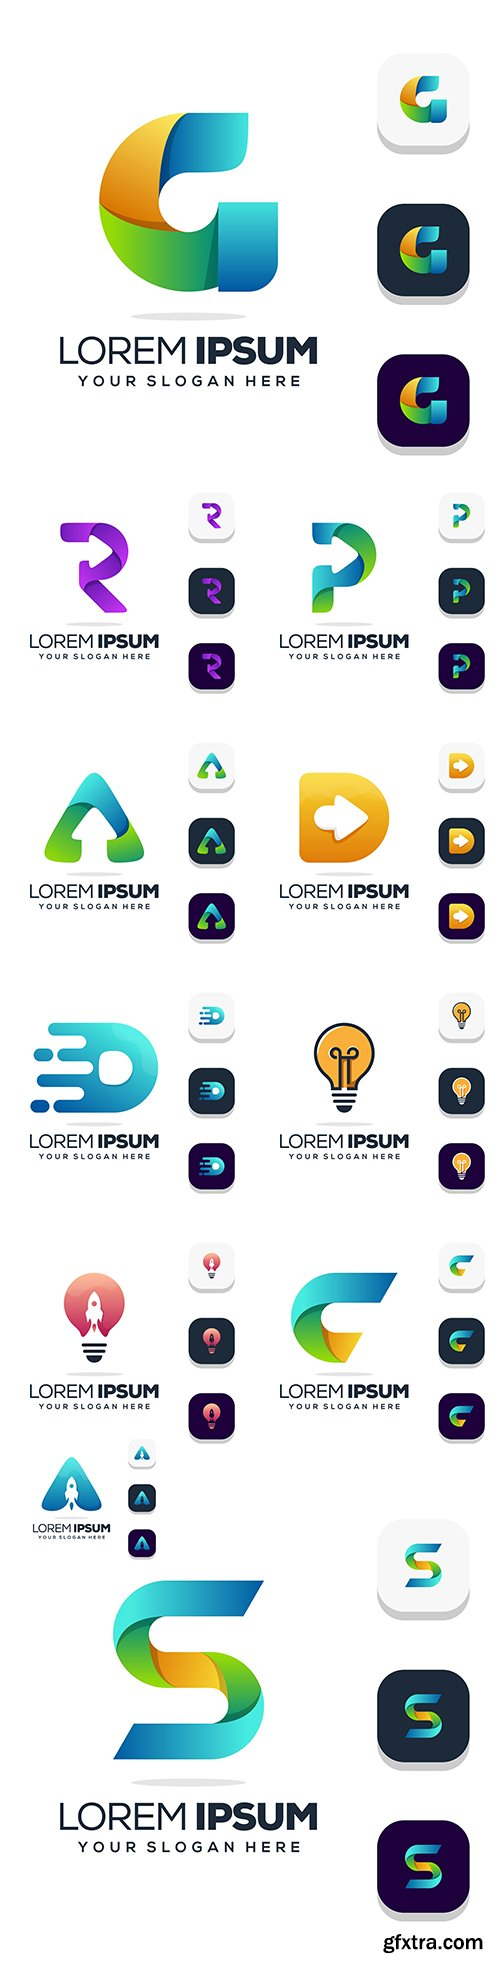 Capital letter business logo design and icons